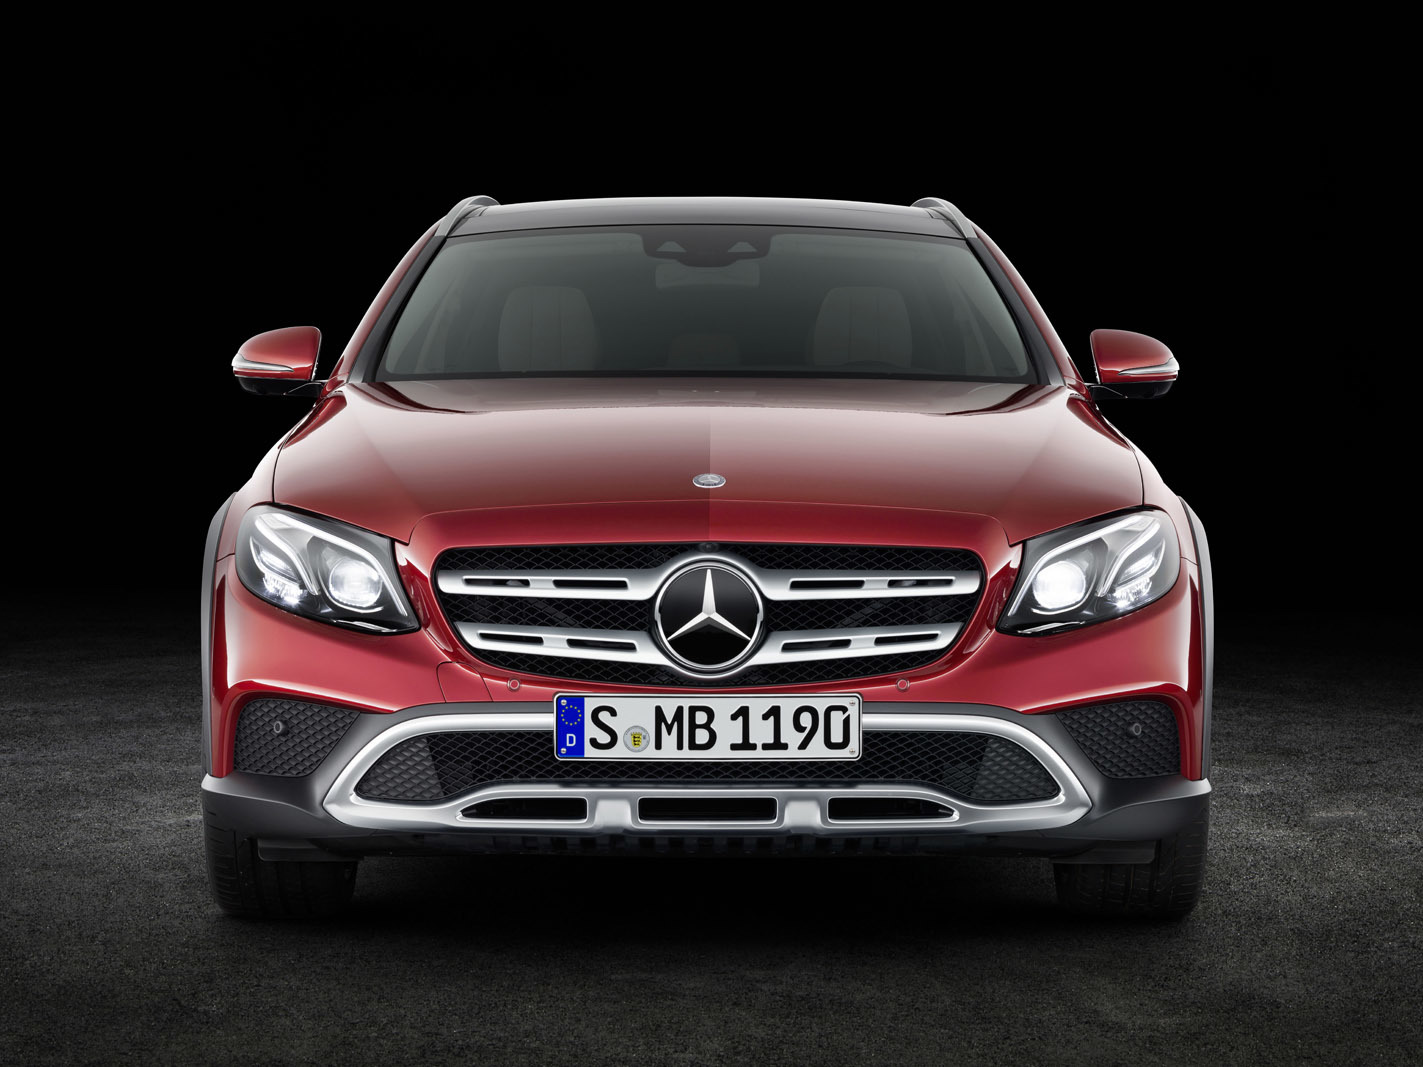 Mercedes-Benz E-Klasse All Terrain; Studio; 2016; Exterieur: designo hyazinthrot metallic // Mercedes-Benz E-Class All Terrain; studio; 2016; exterior: designo hyacinth red metallic